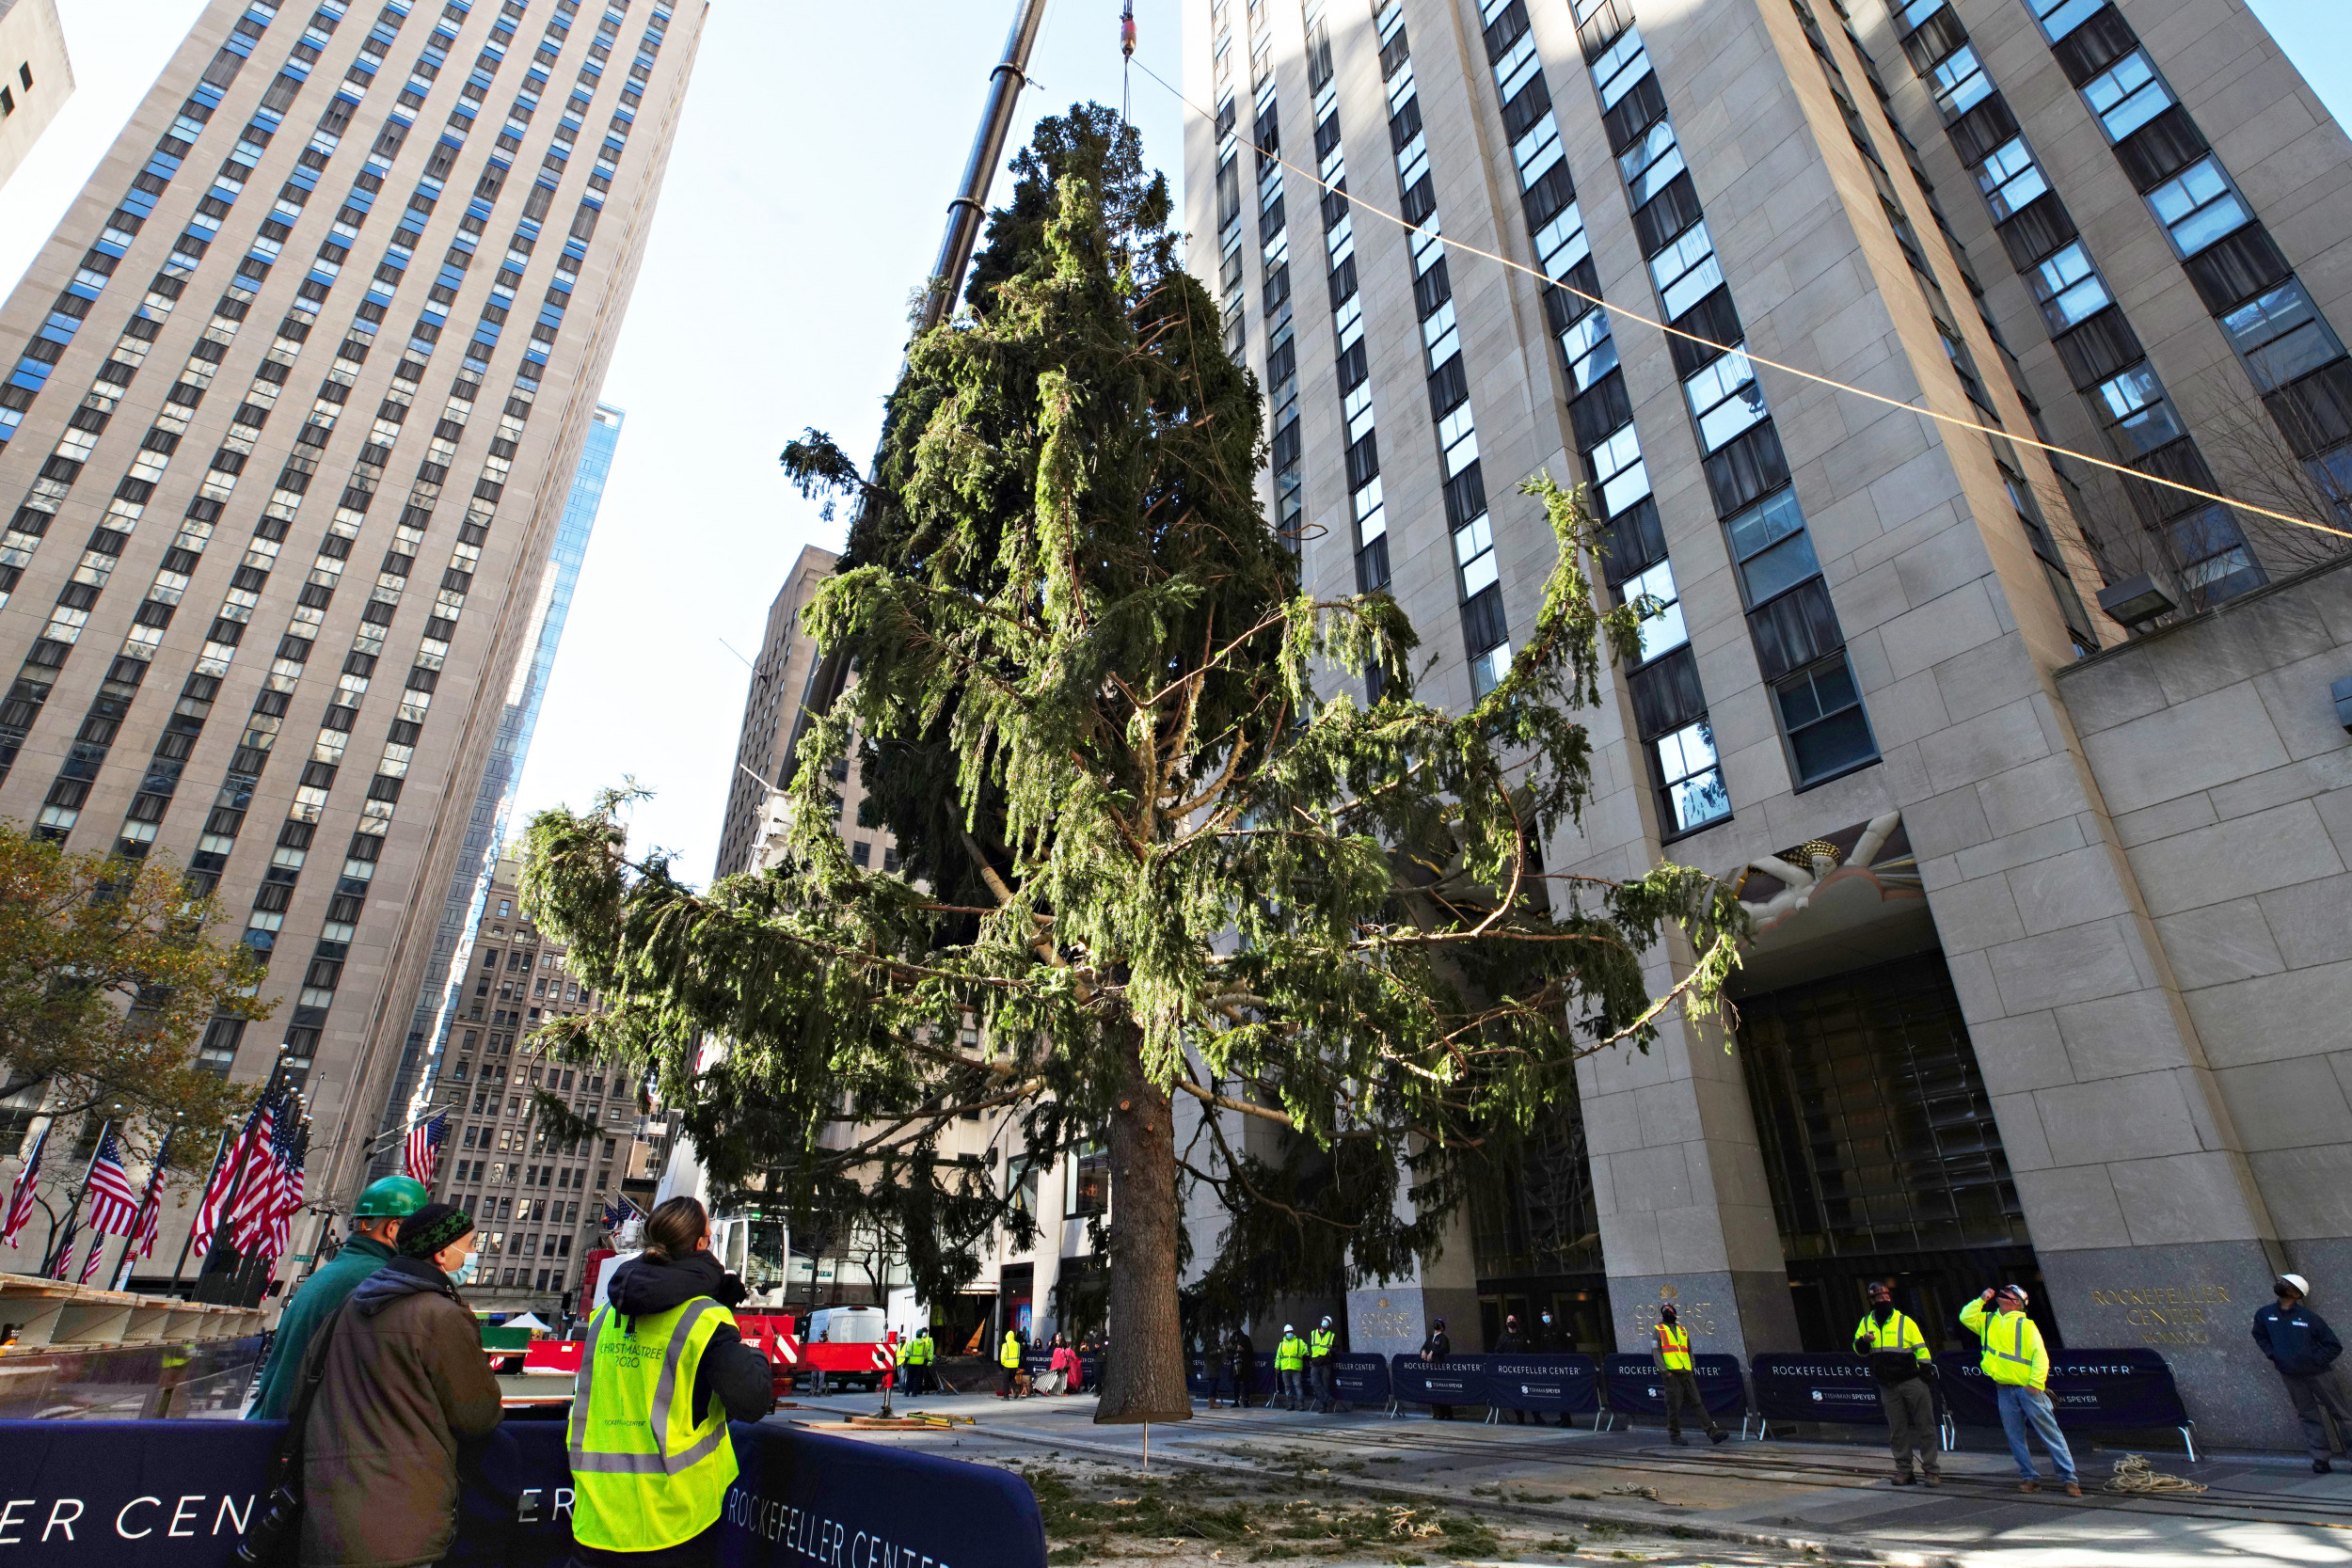 Here's who chose 2020's meme-worthy Rockefeller Christmas tree